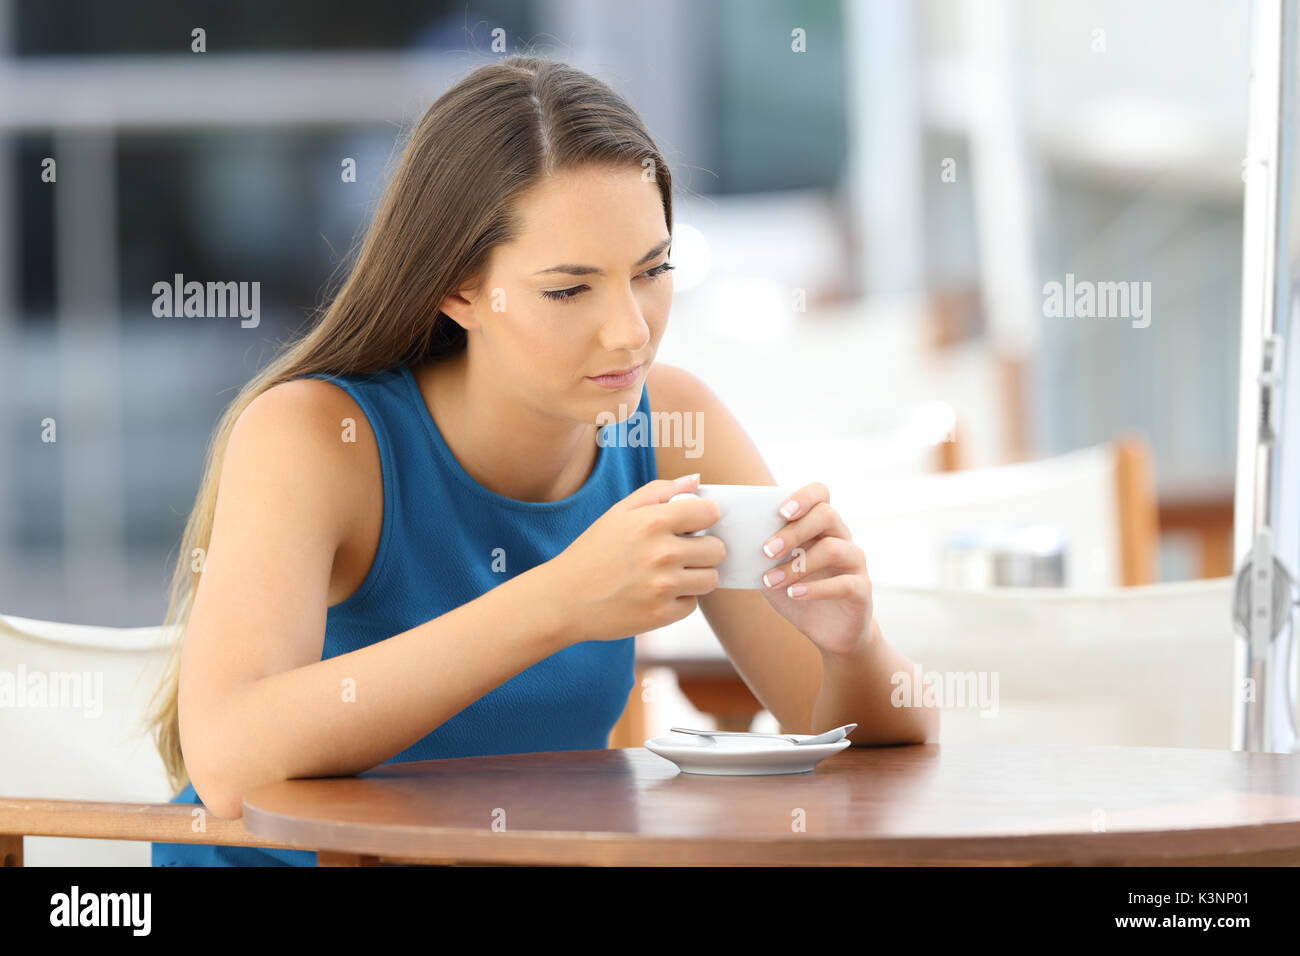 single longing pensive woman sitting in a coffee shop - Stock Image